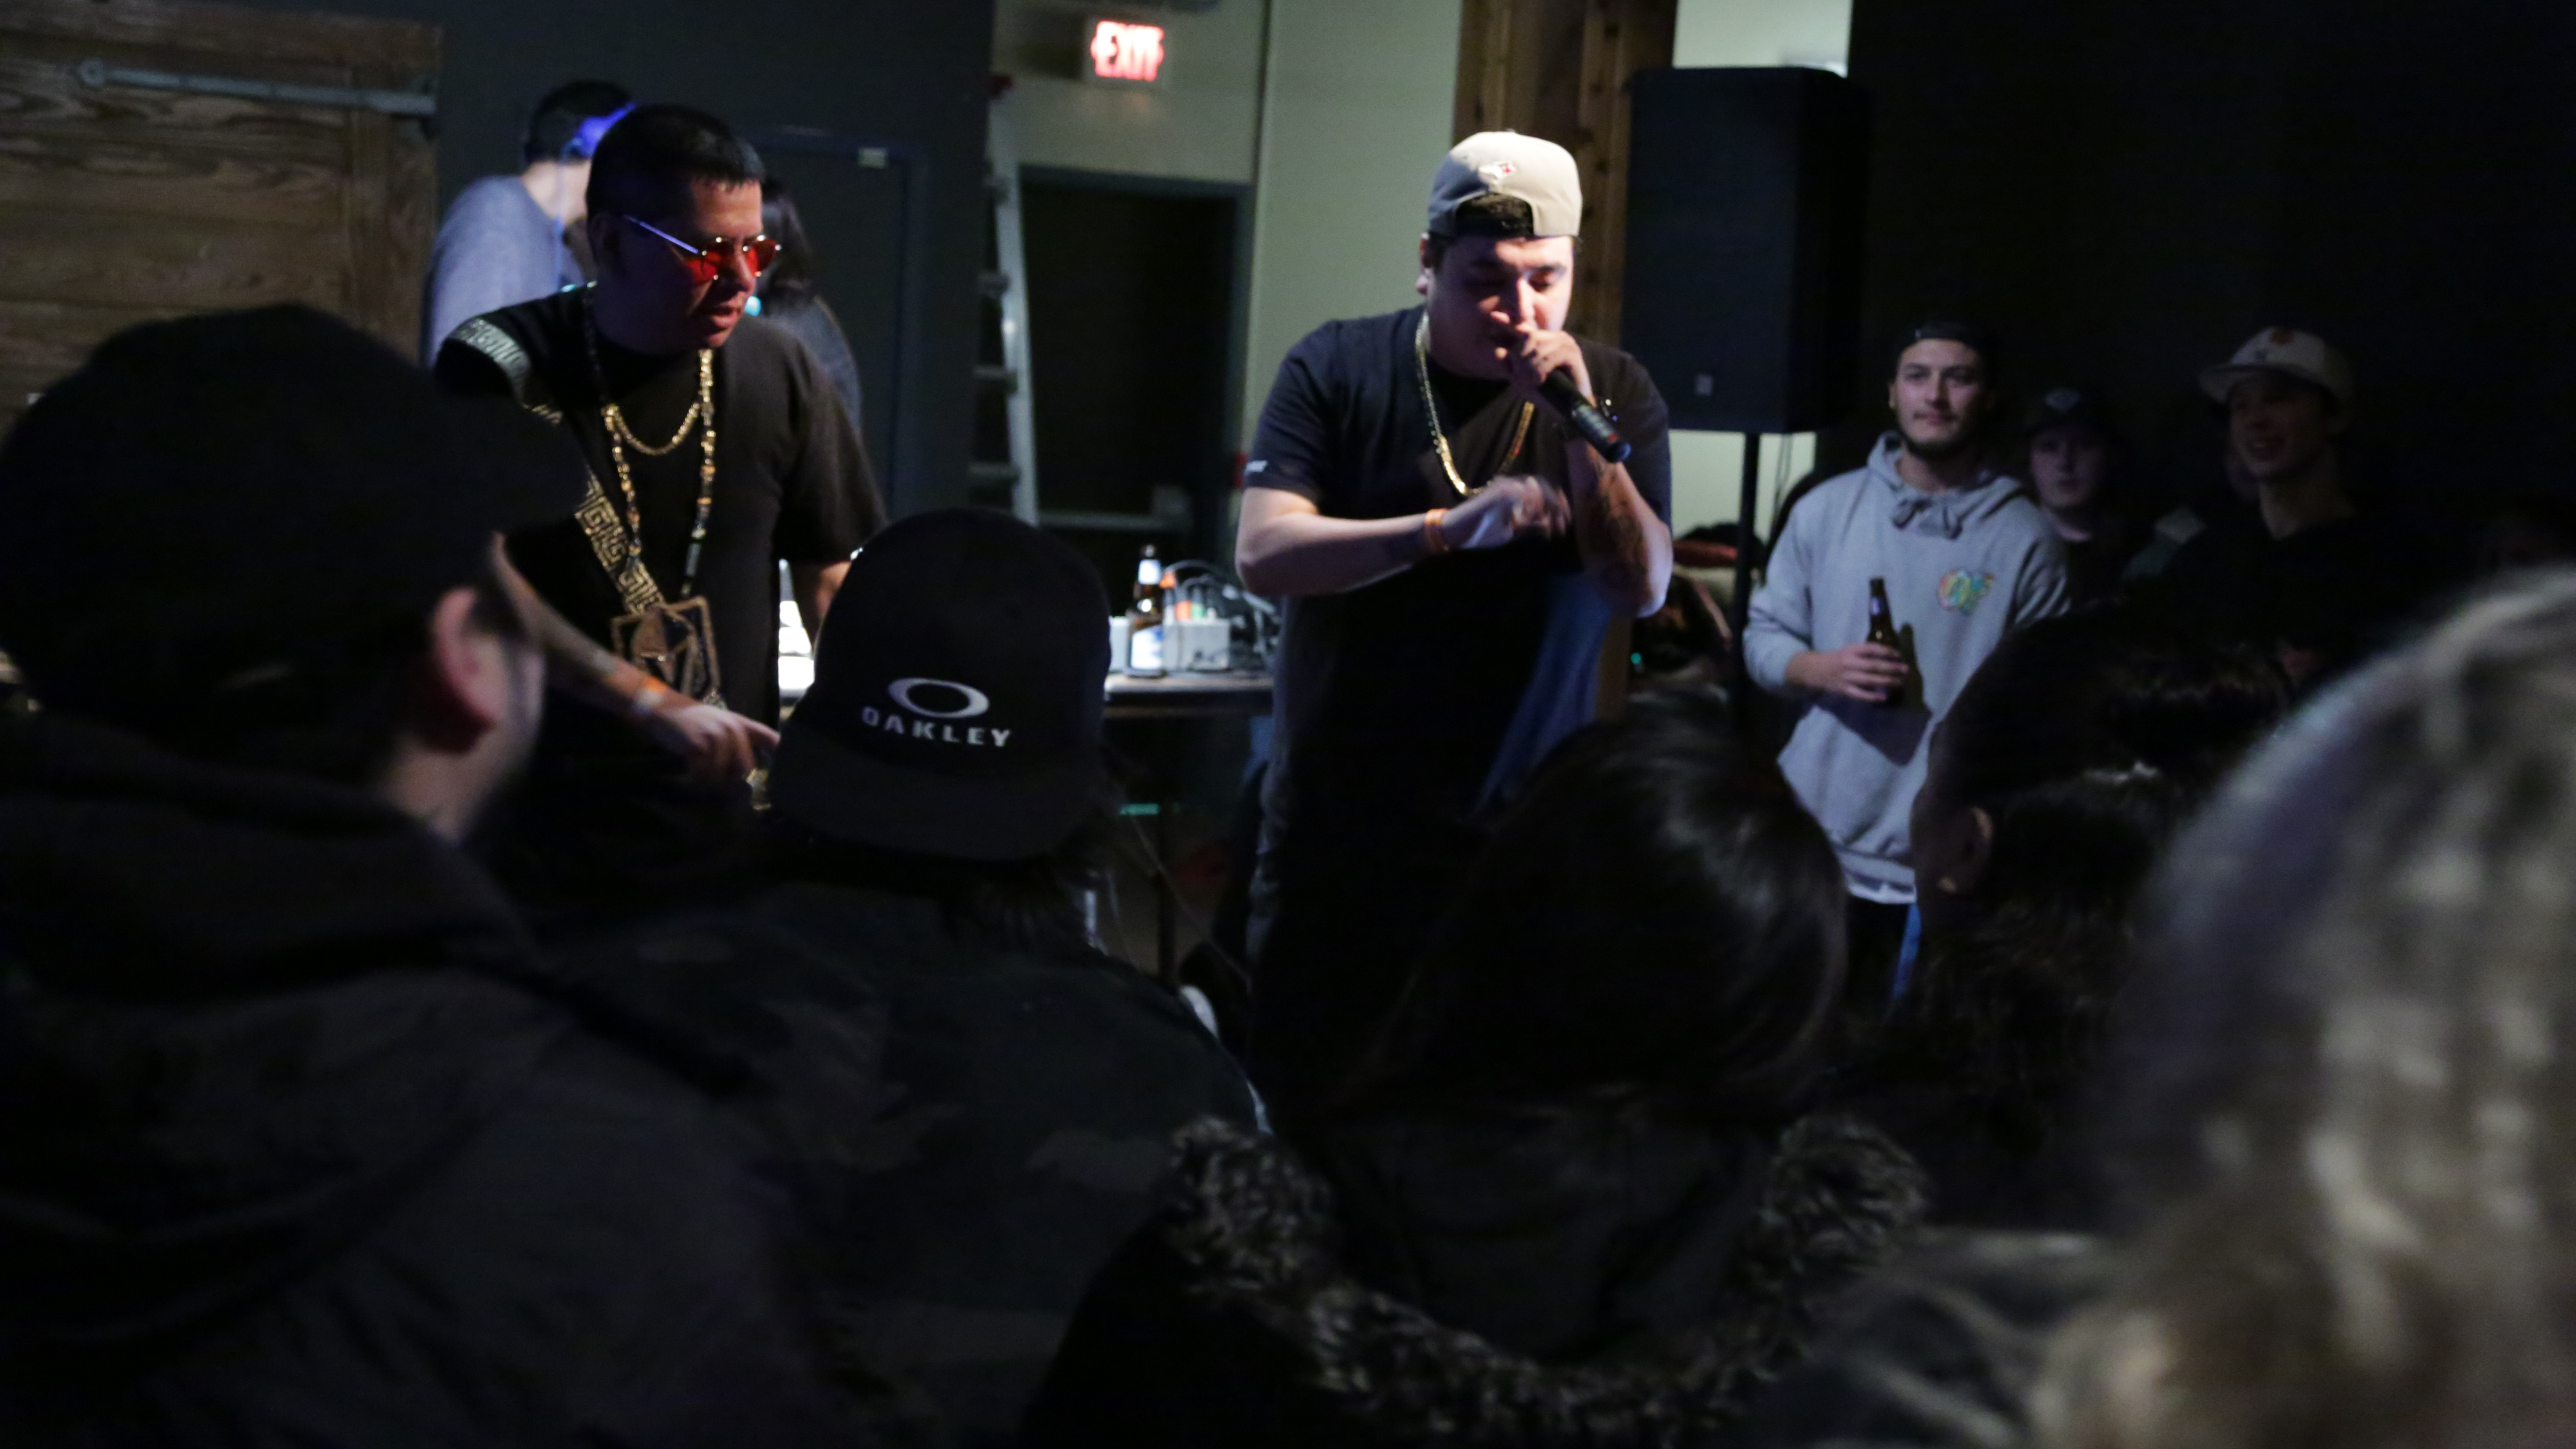 My night at the rap battle and an innovative grant - INK